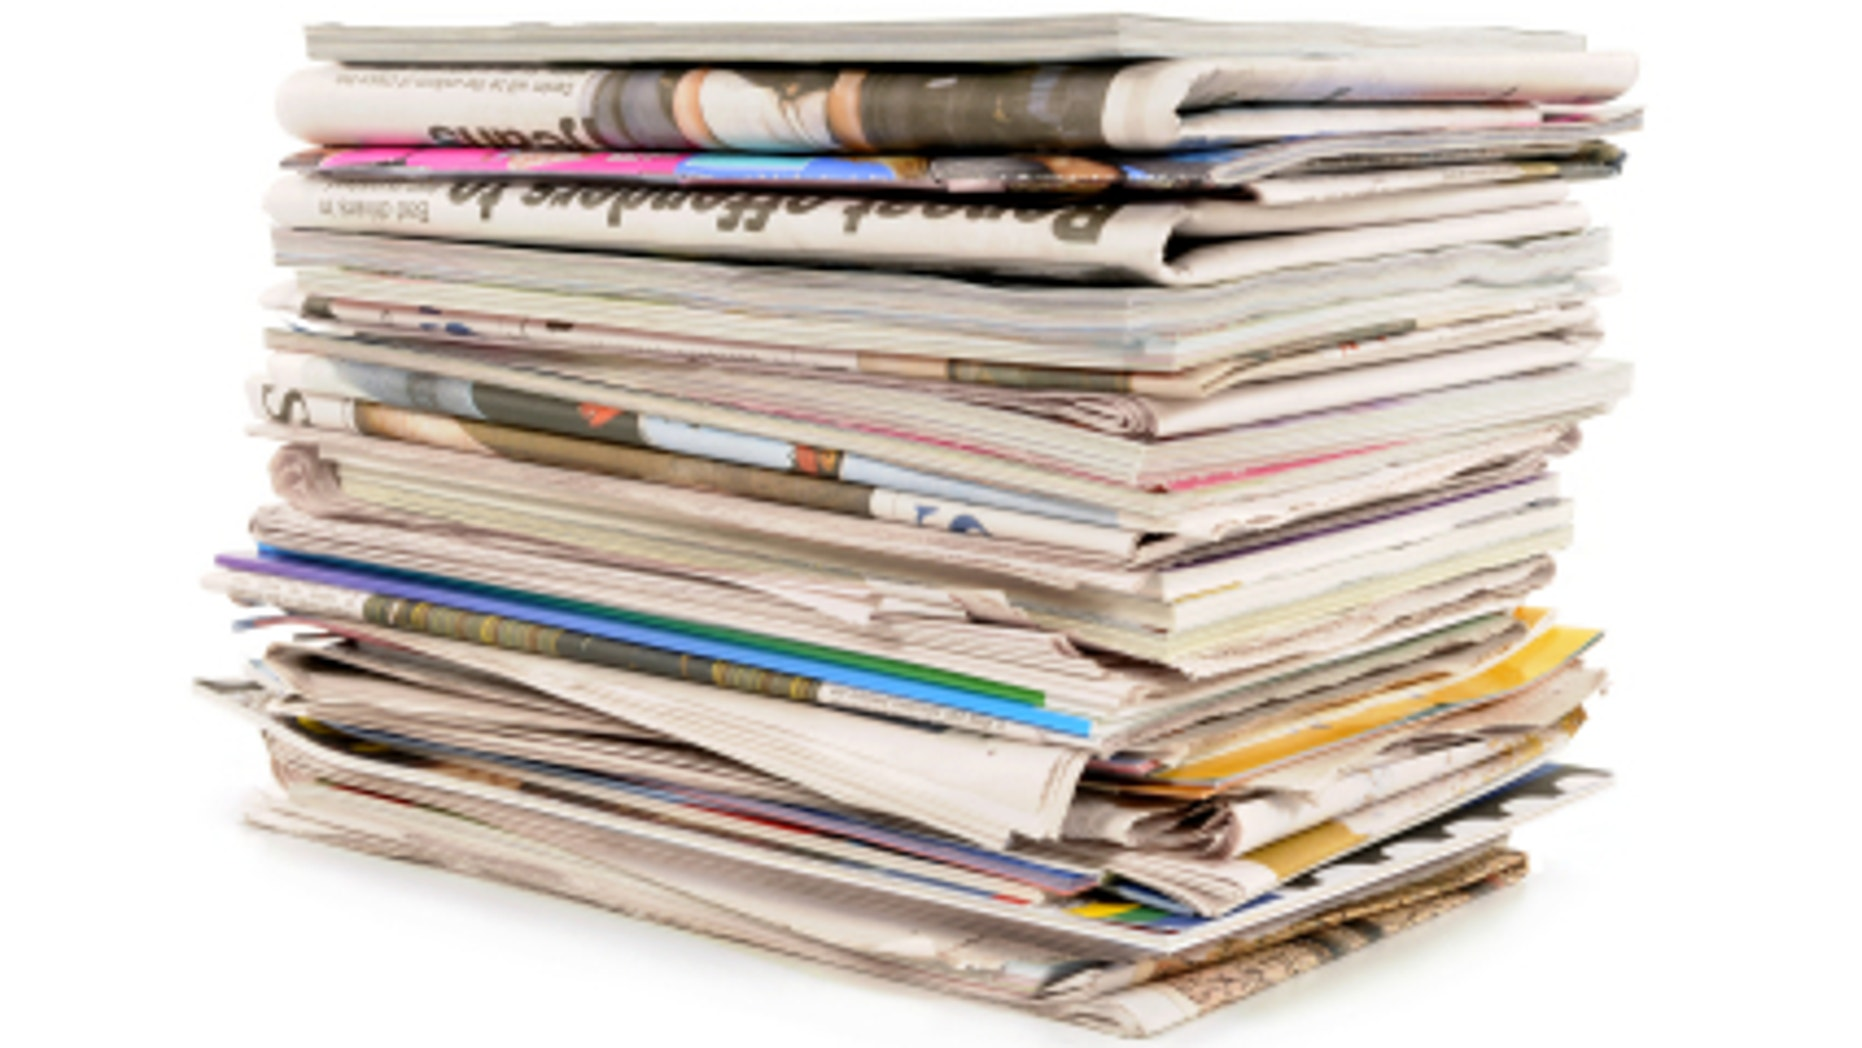 Pile of old newspapers and magazines against a white background